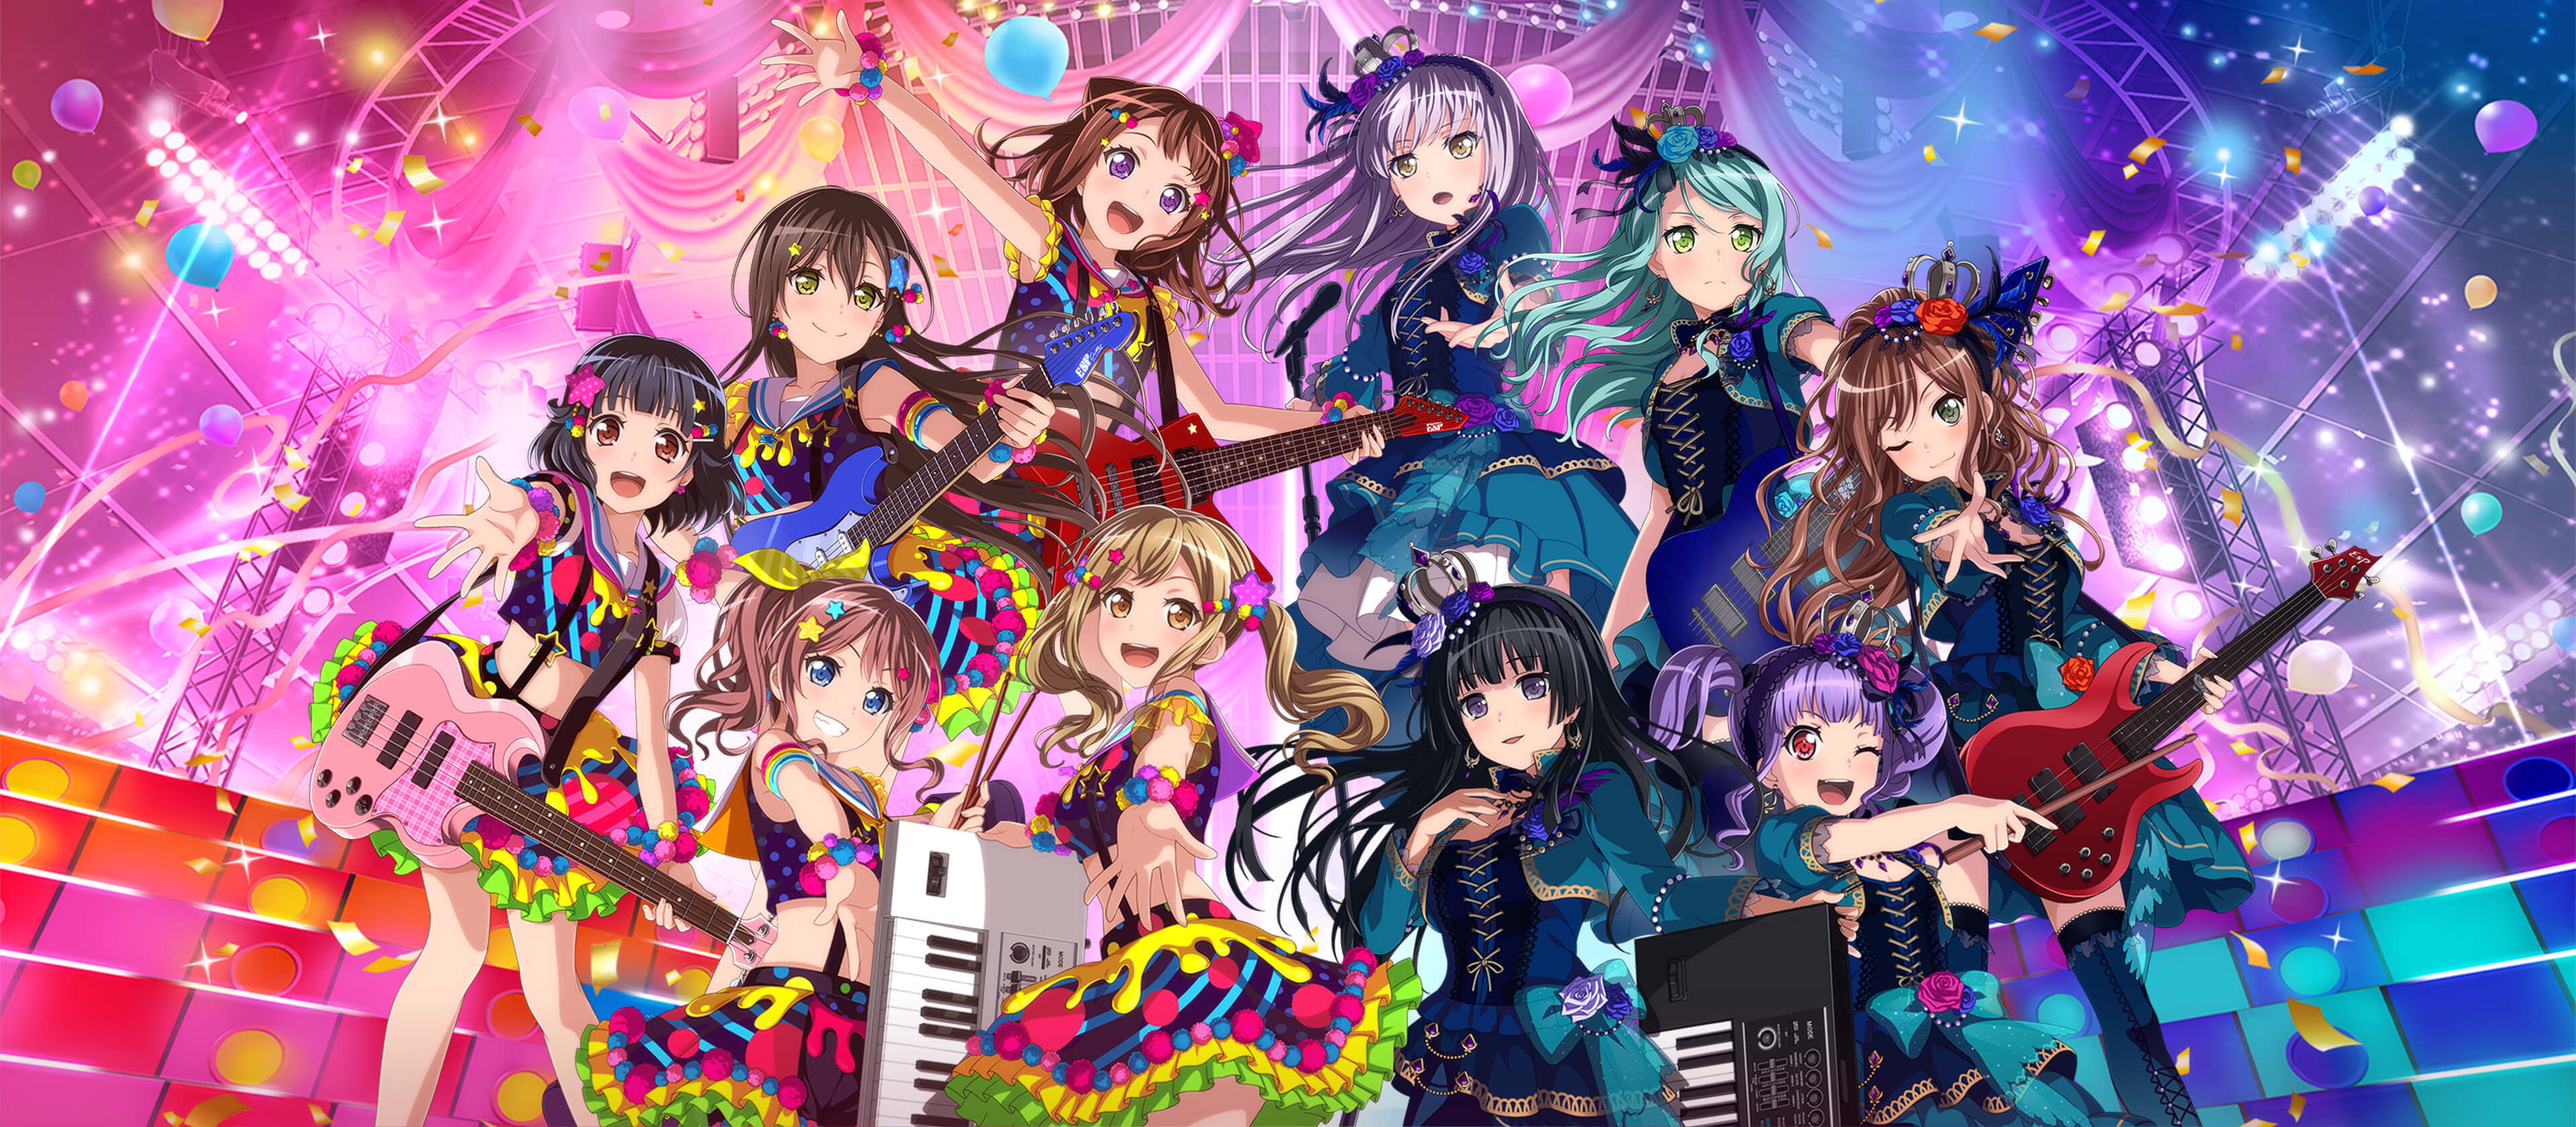 https://bang-dream.com/img/top/main-visual.jpg